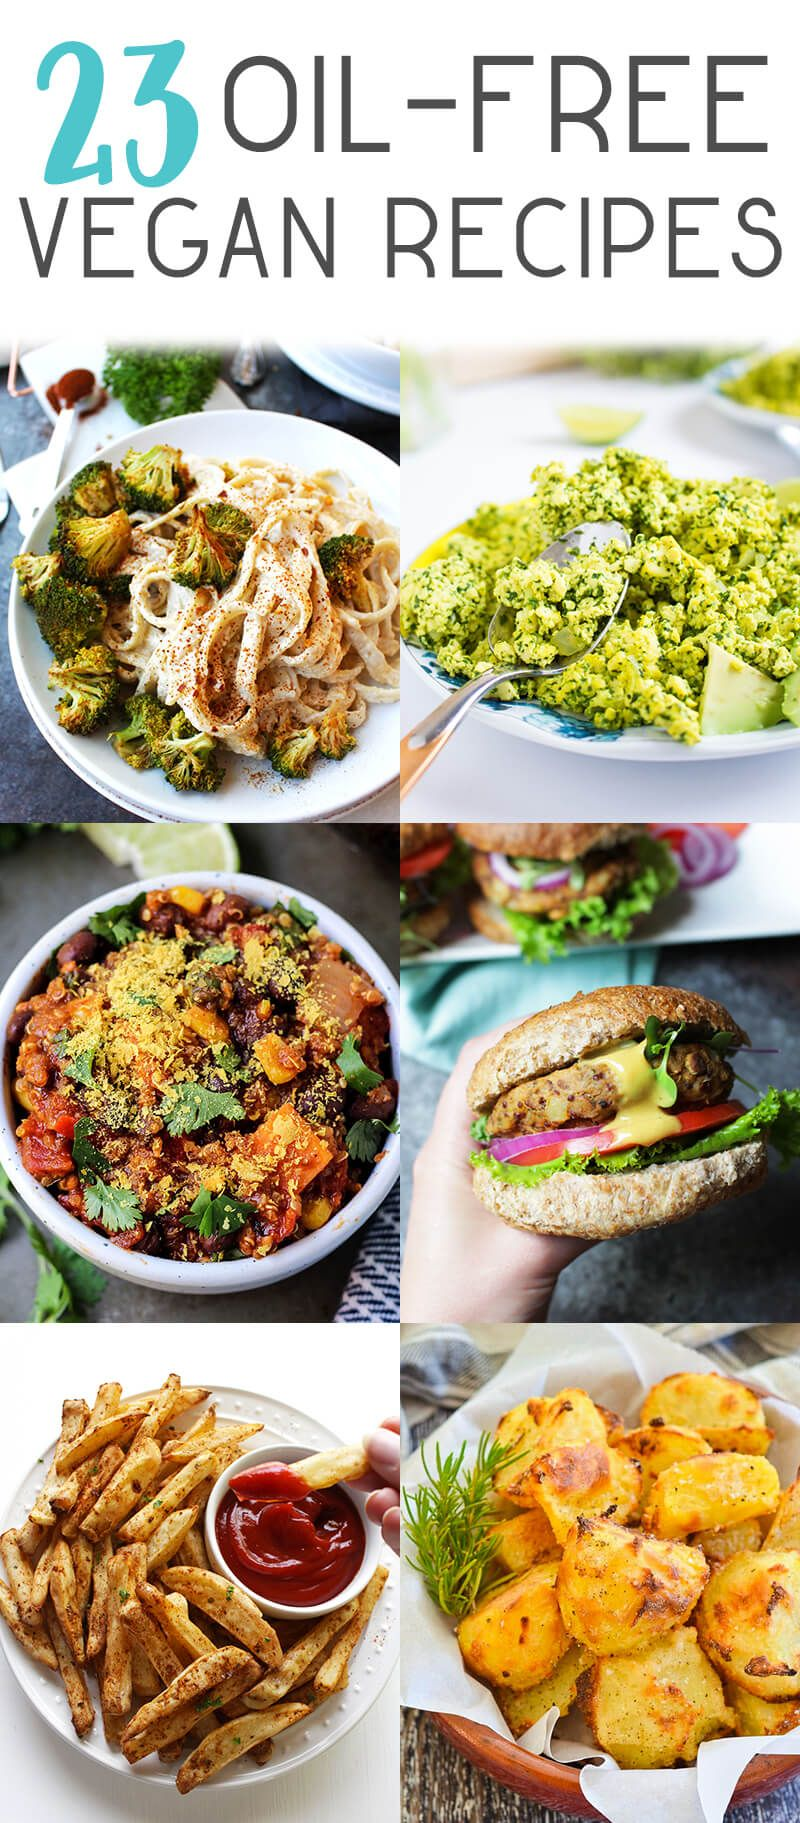 23 Oil Free Vegan Recipes That Will Make Your Tastebuds